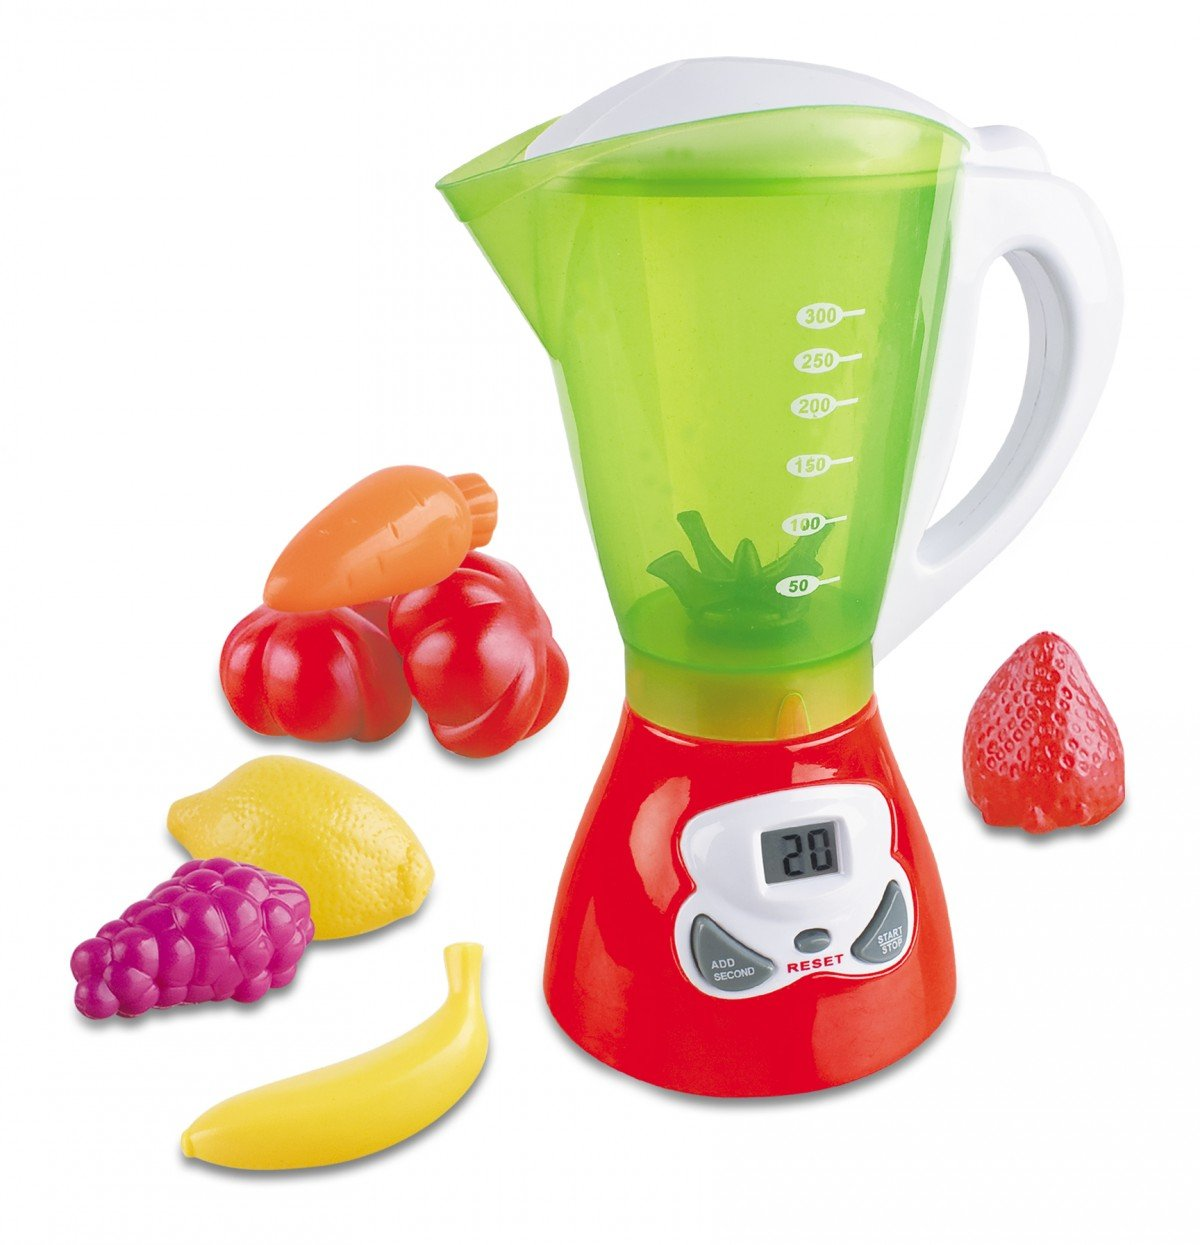 Liberty Imports My First Kitchen Appliances Toy - Kids Pretend Play Gourmet Cooking Set with Lights and Sounds (Juice Blender) by Liberty Imports